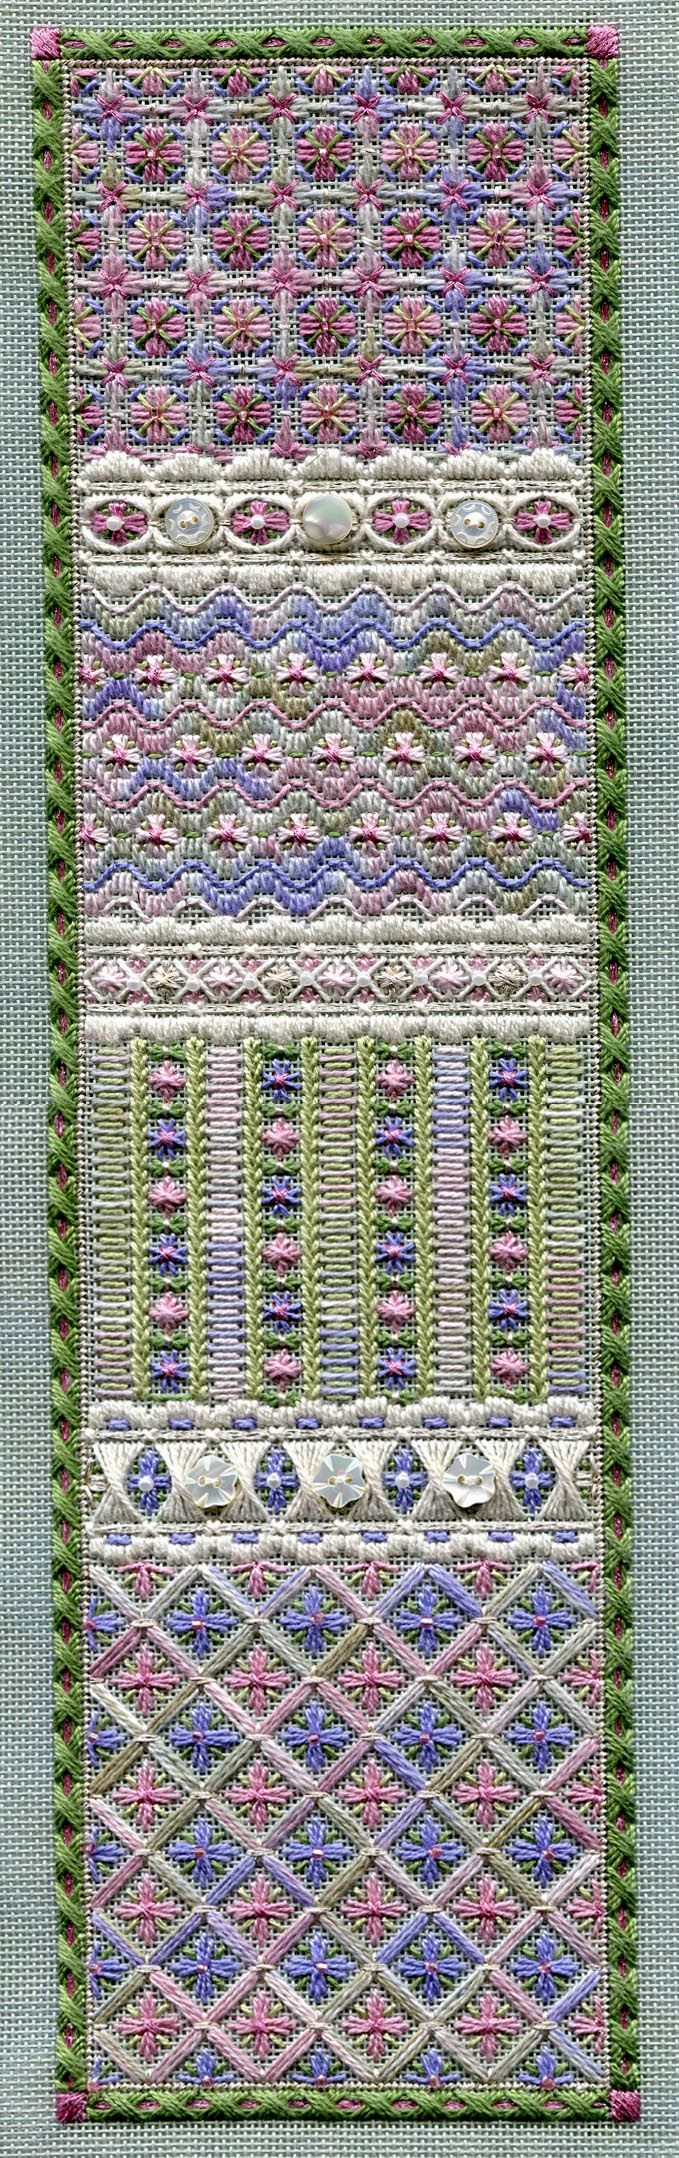 """Long Spring Panel   4.5"""" x 16.25"""" on 18 ct santa fe sage canvas Pattern: $16.00 (includes beads, but not buttons) - by Laura J Perin Designs"""